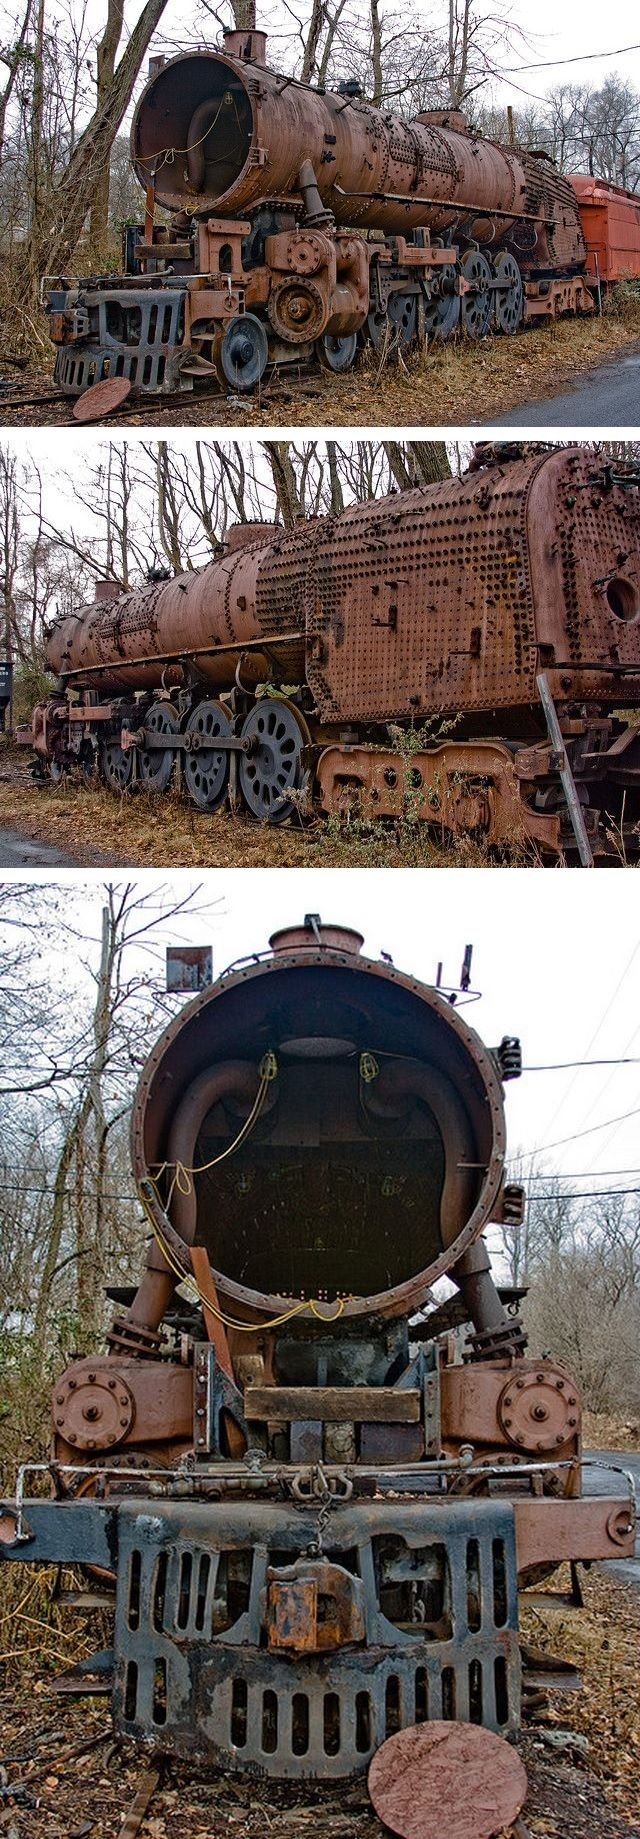 Rusting abandoned locomotives left to rot for years in a derelict railway siding.